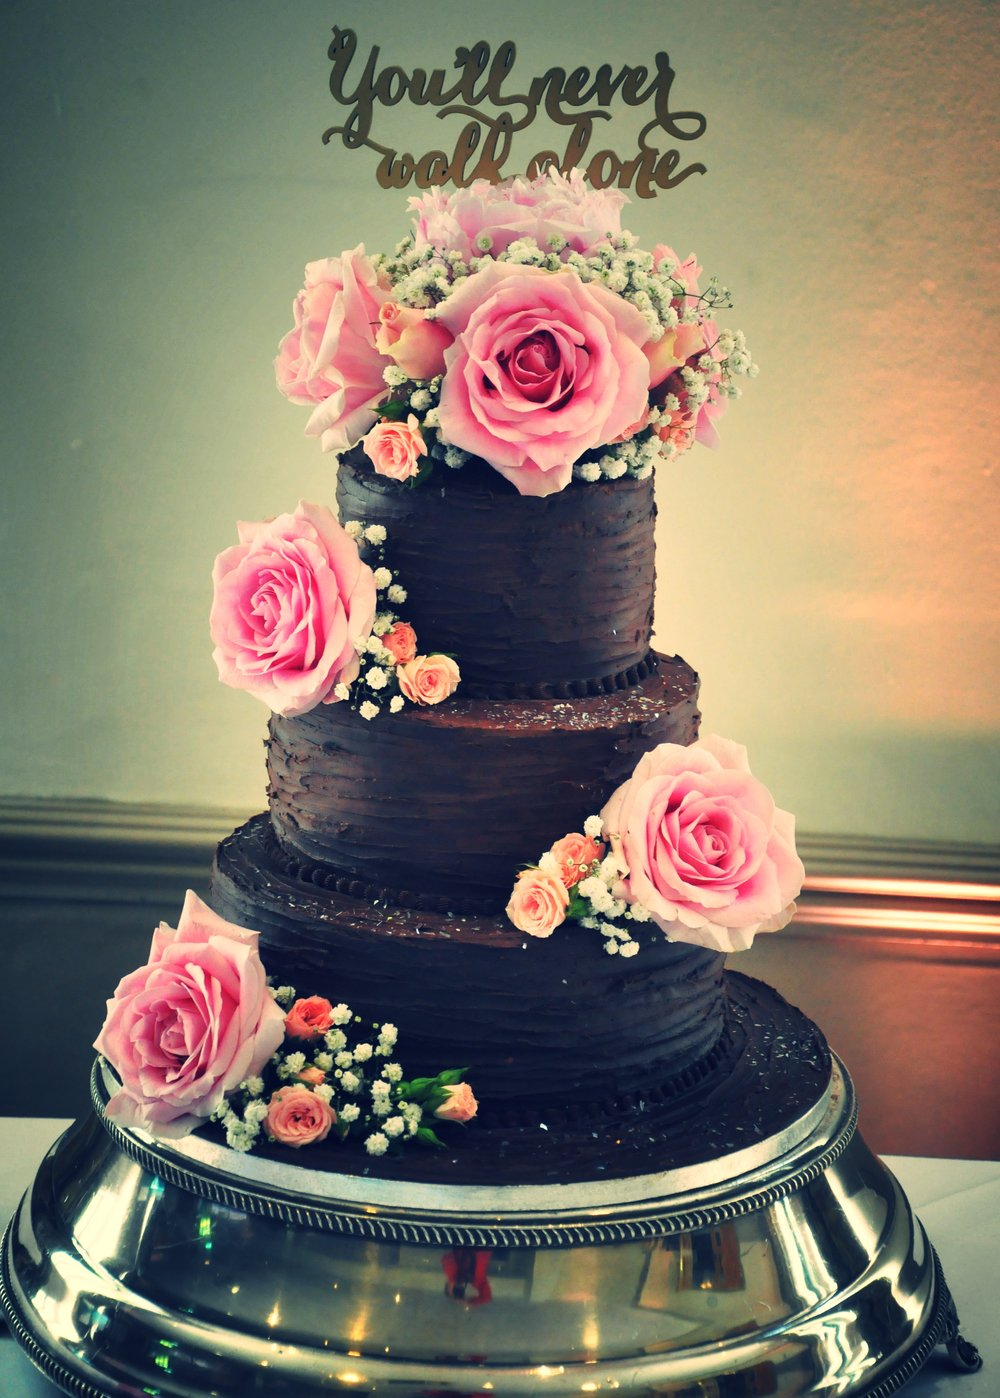 Chocolate ganache  - Three tier chocolate wedding cake with ganache and dark chocolate finish.  The cake is made from 3 layers of chocolate orange, chocolate coffee and bitter dark chocolate.  Decorated with fresh flowers.